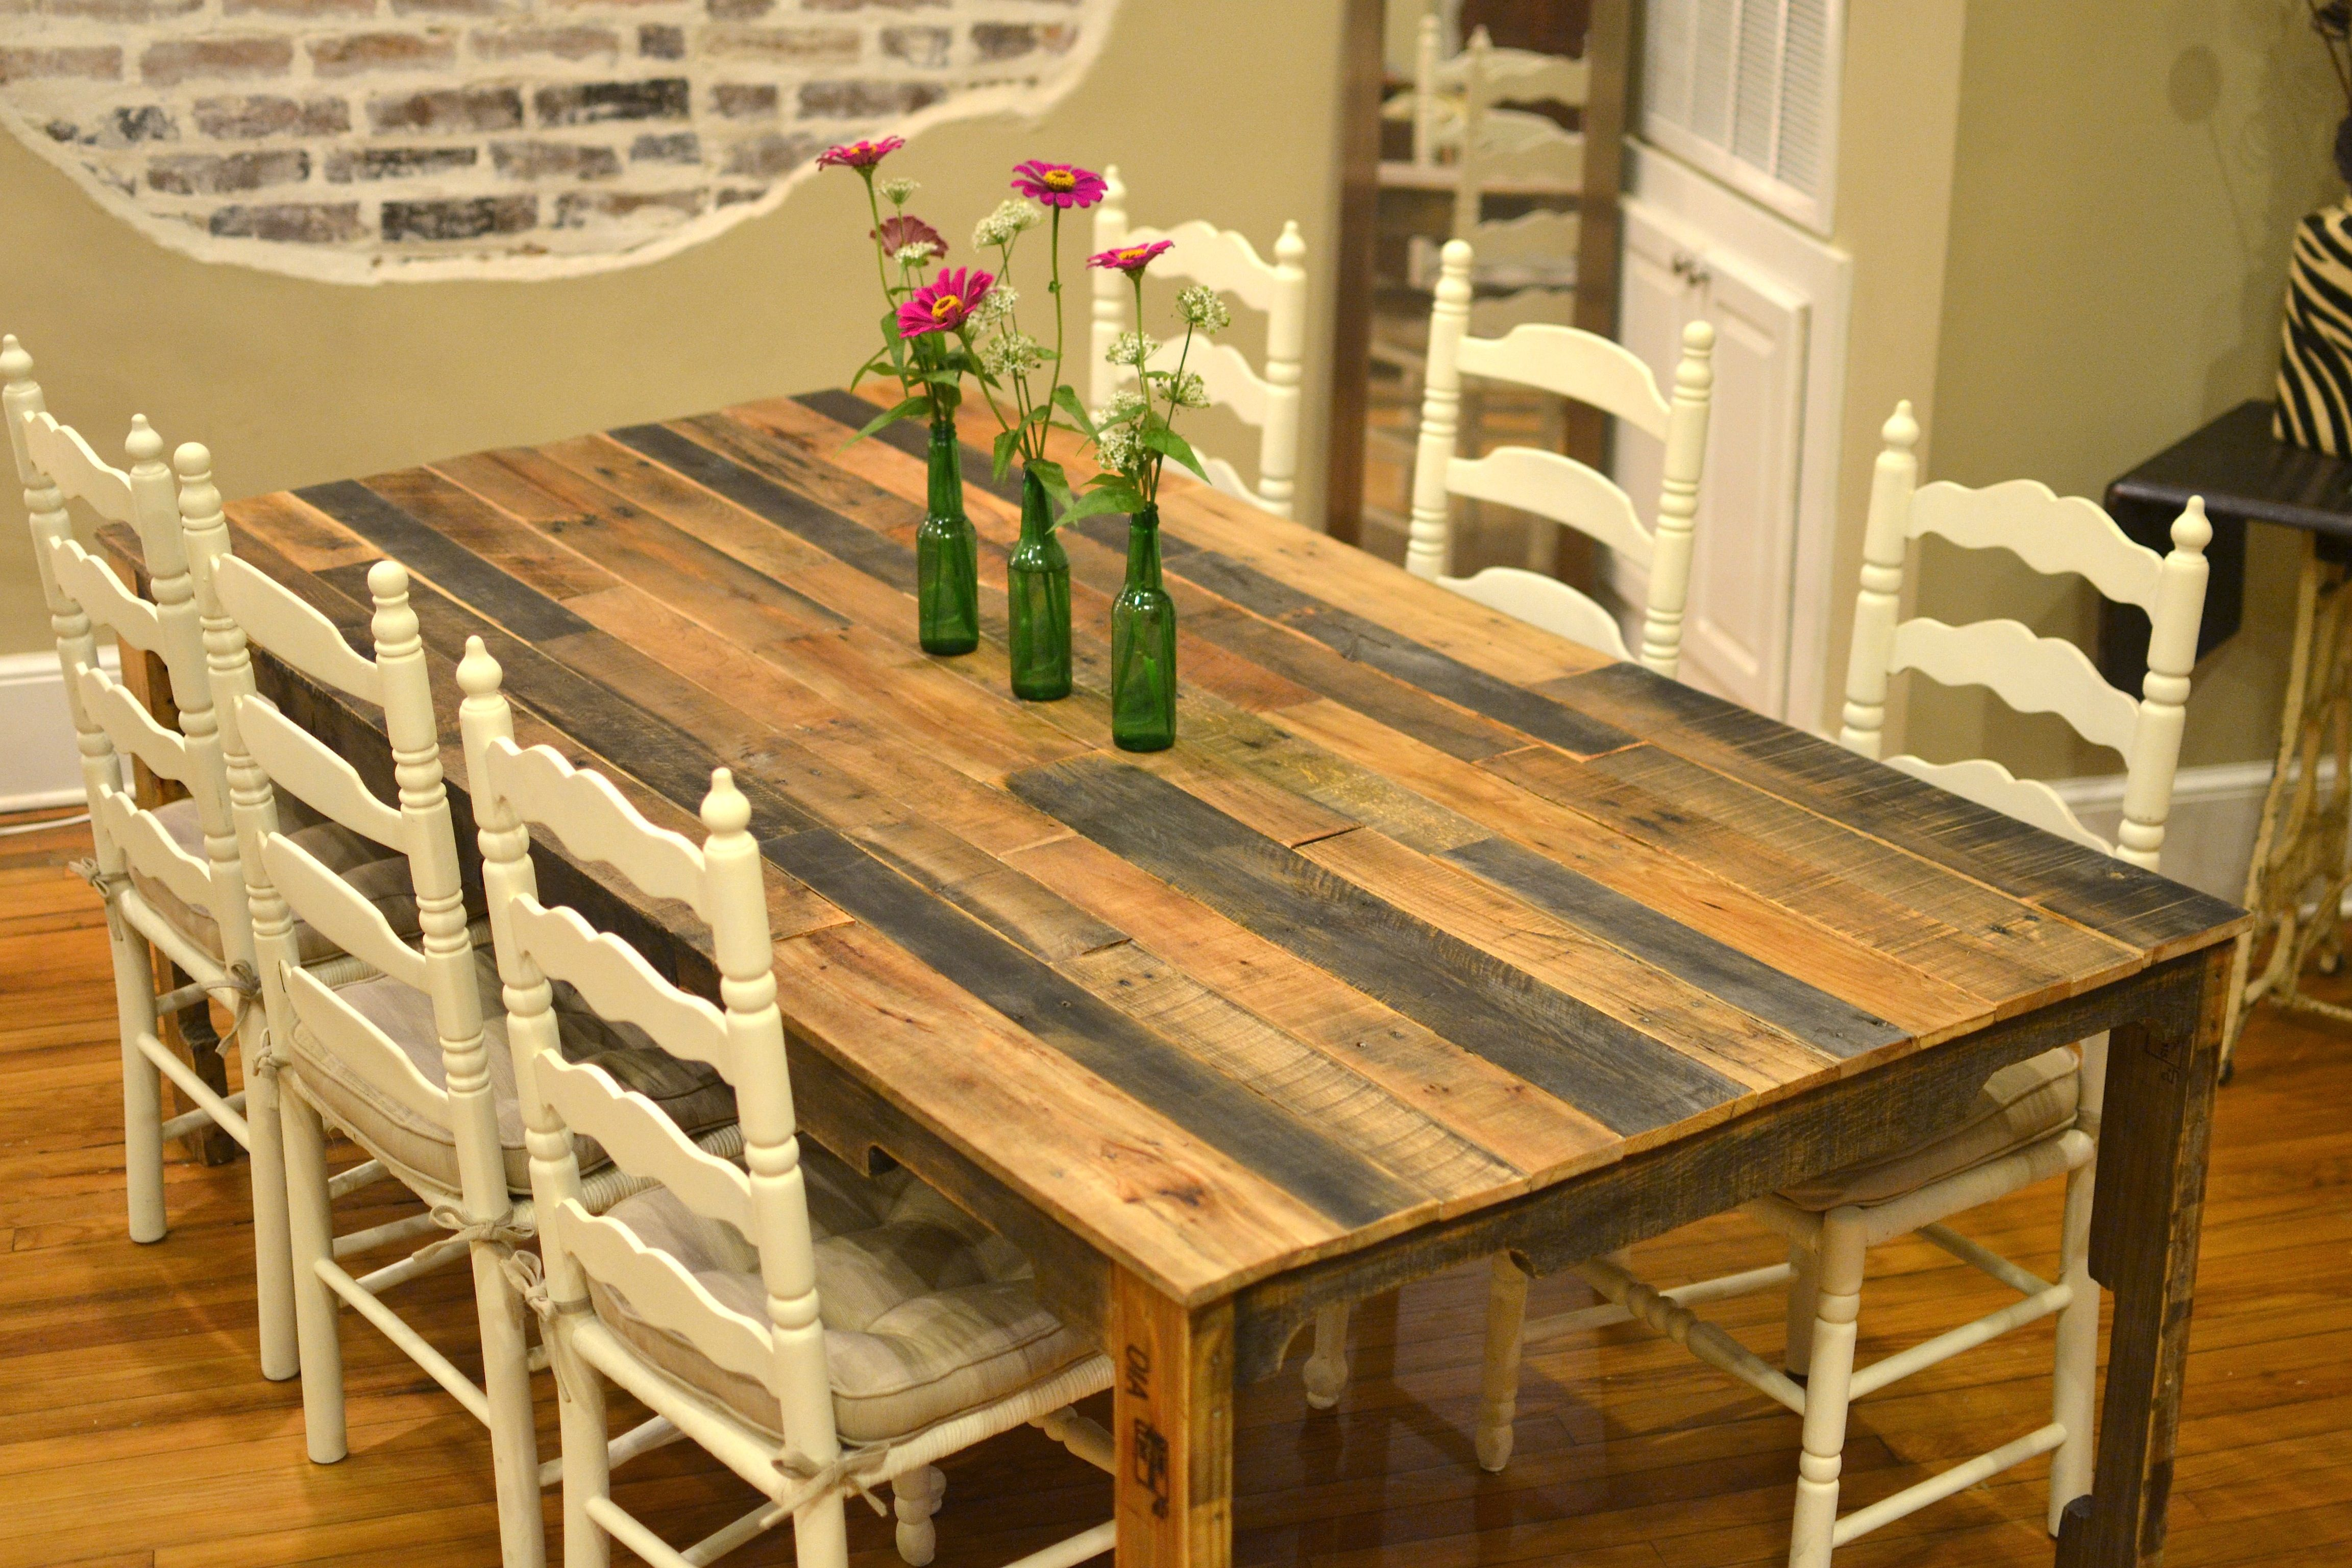 The Shipping Pallet Dining Table Pallet Dining Table Diy Dining